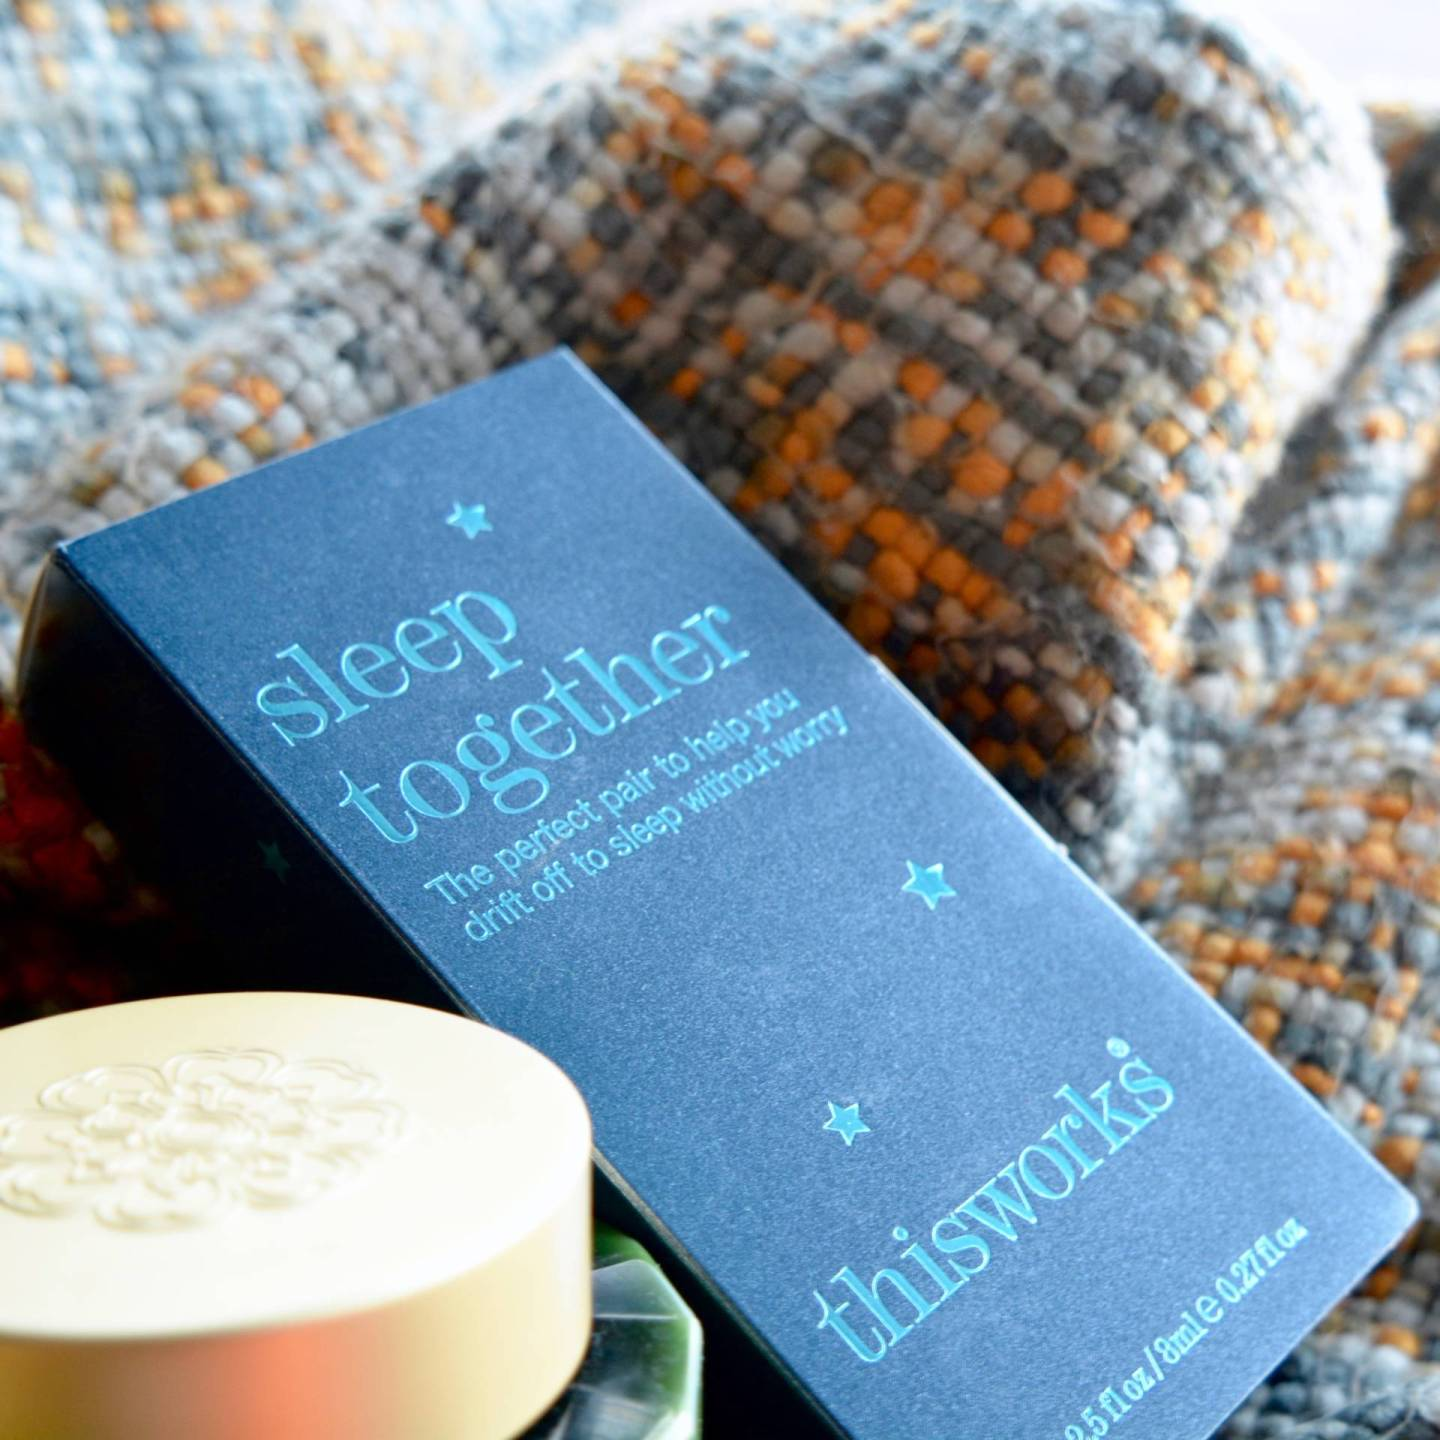 Winter pamper - struggle to sleep or find it hard to relax? This Works Sleep Together could be the answer to your prayers